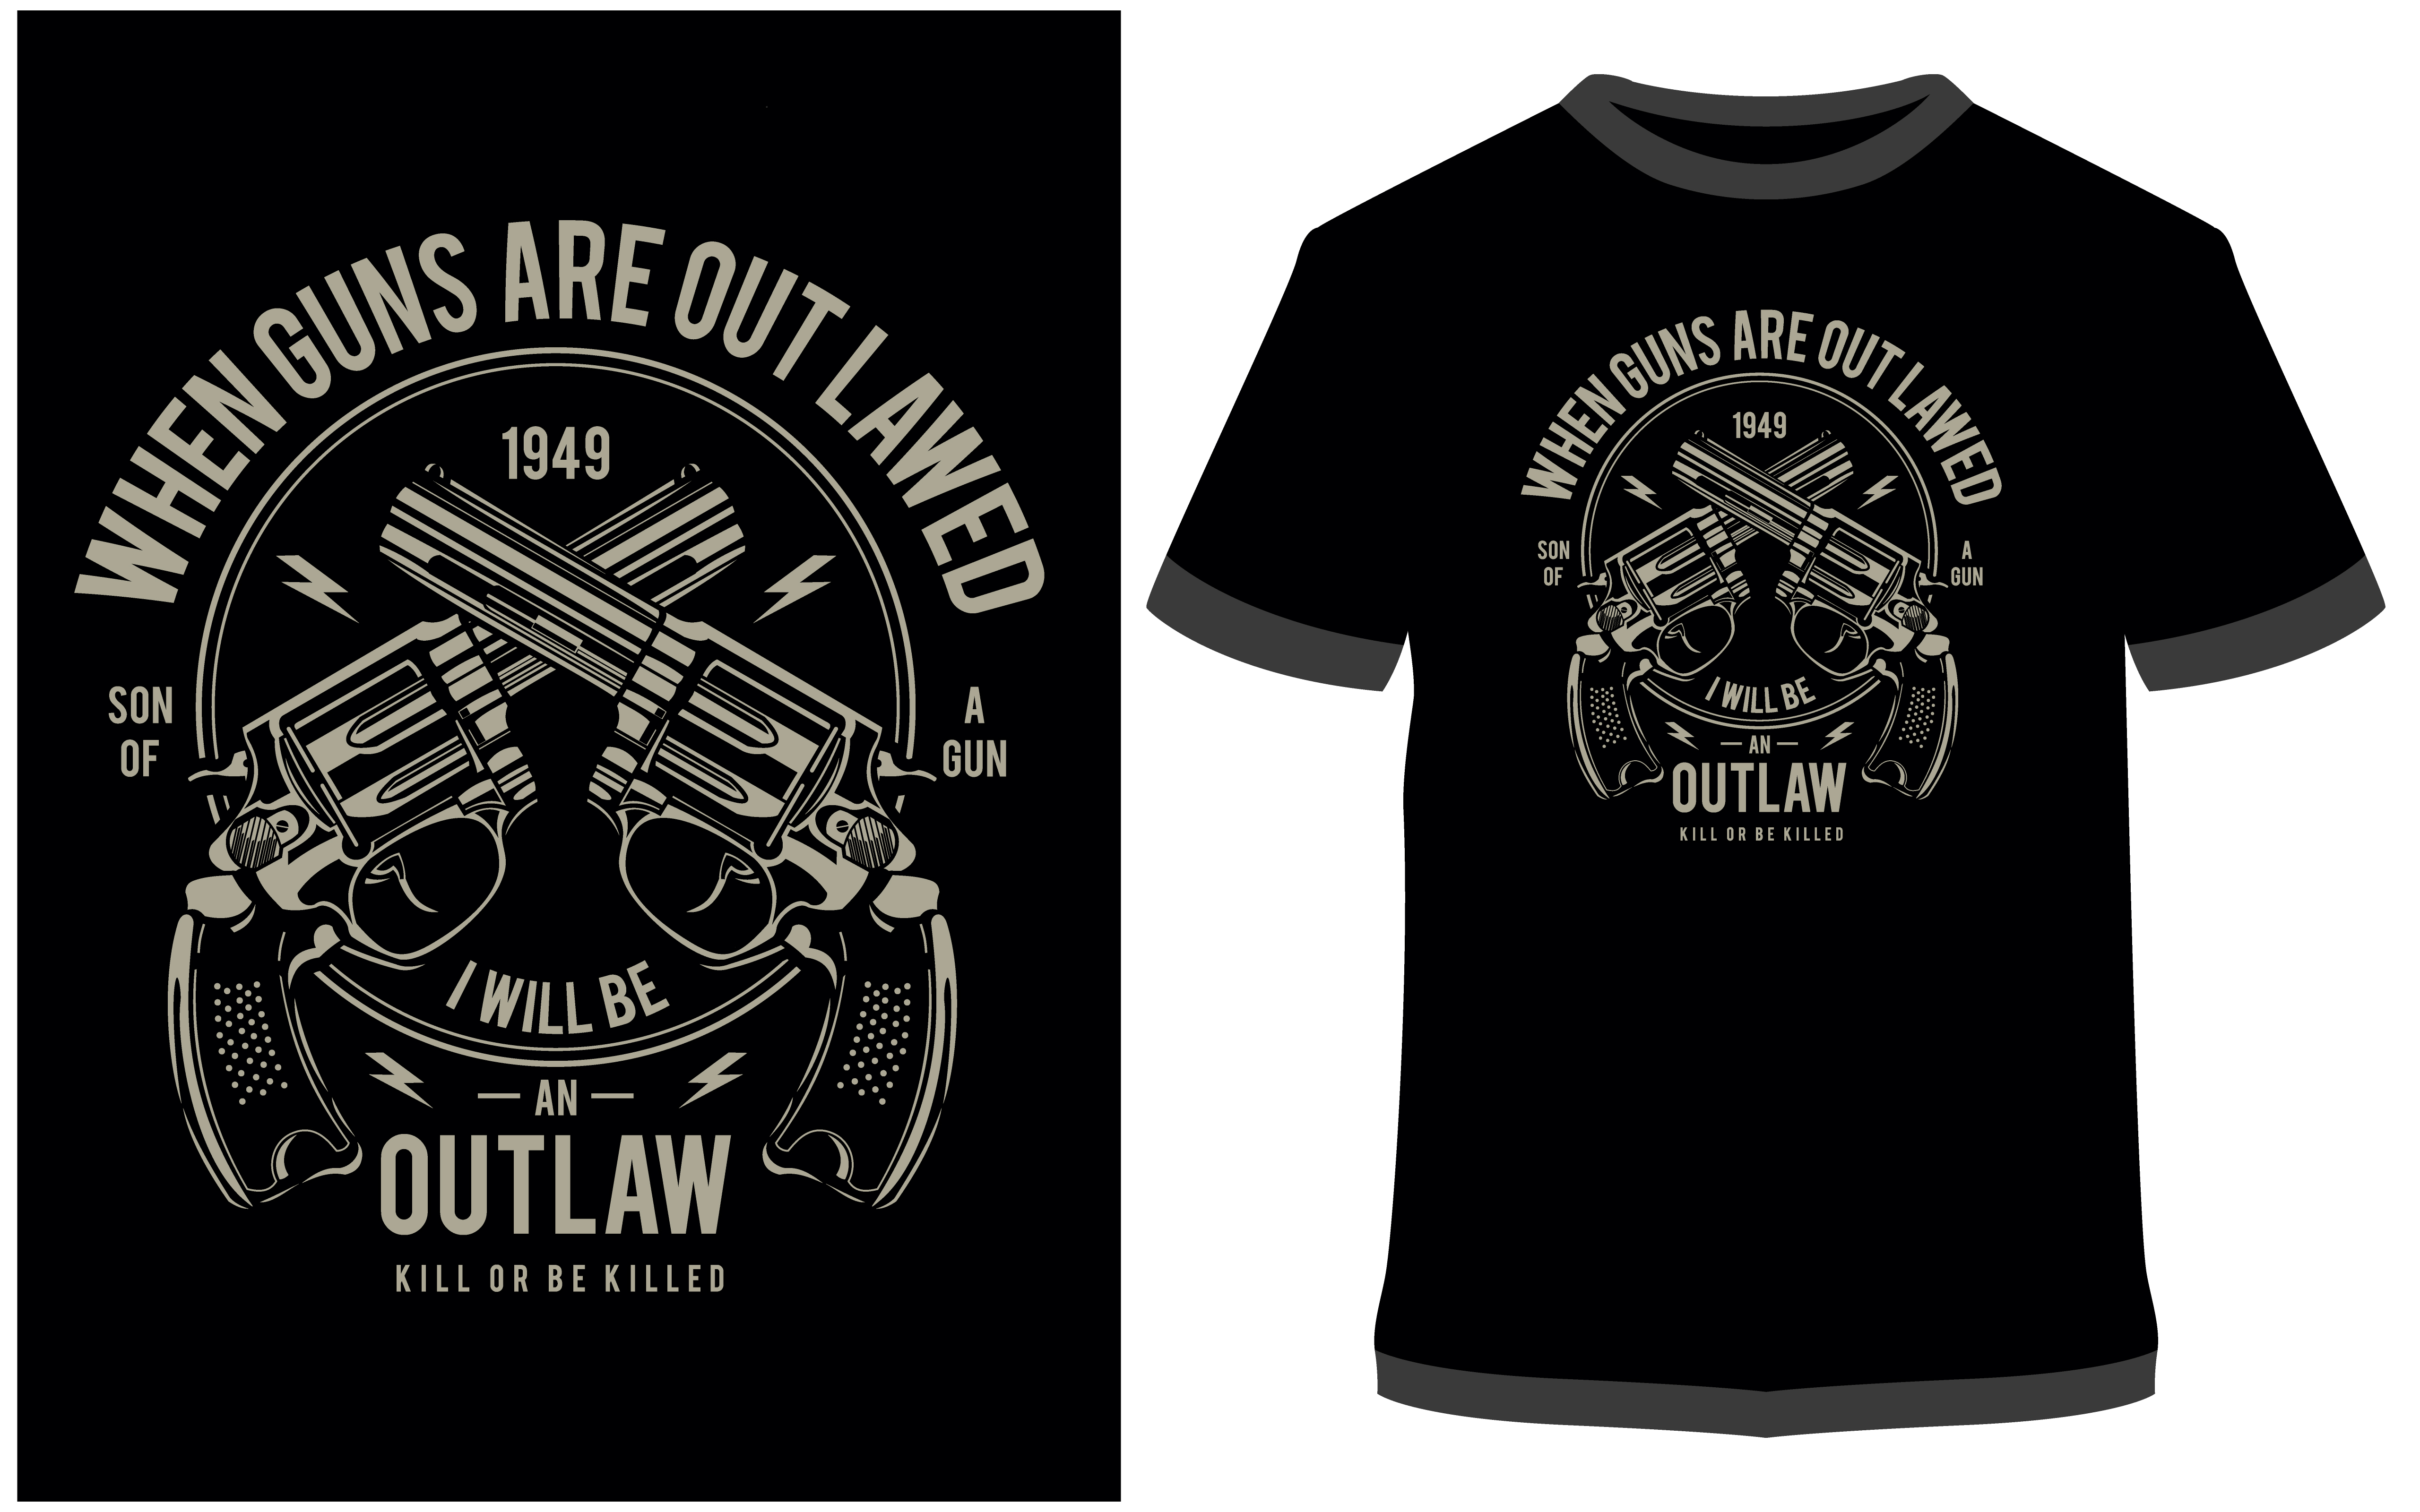 Download Free T Shirt Design Outlaw Graphic By Prodesigns Creative Fabrica for Cricut Explore, Silhouette and other cutting machines.